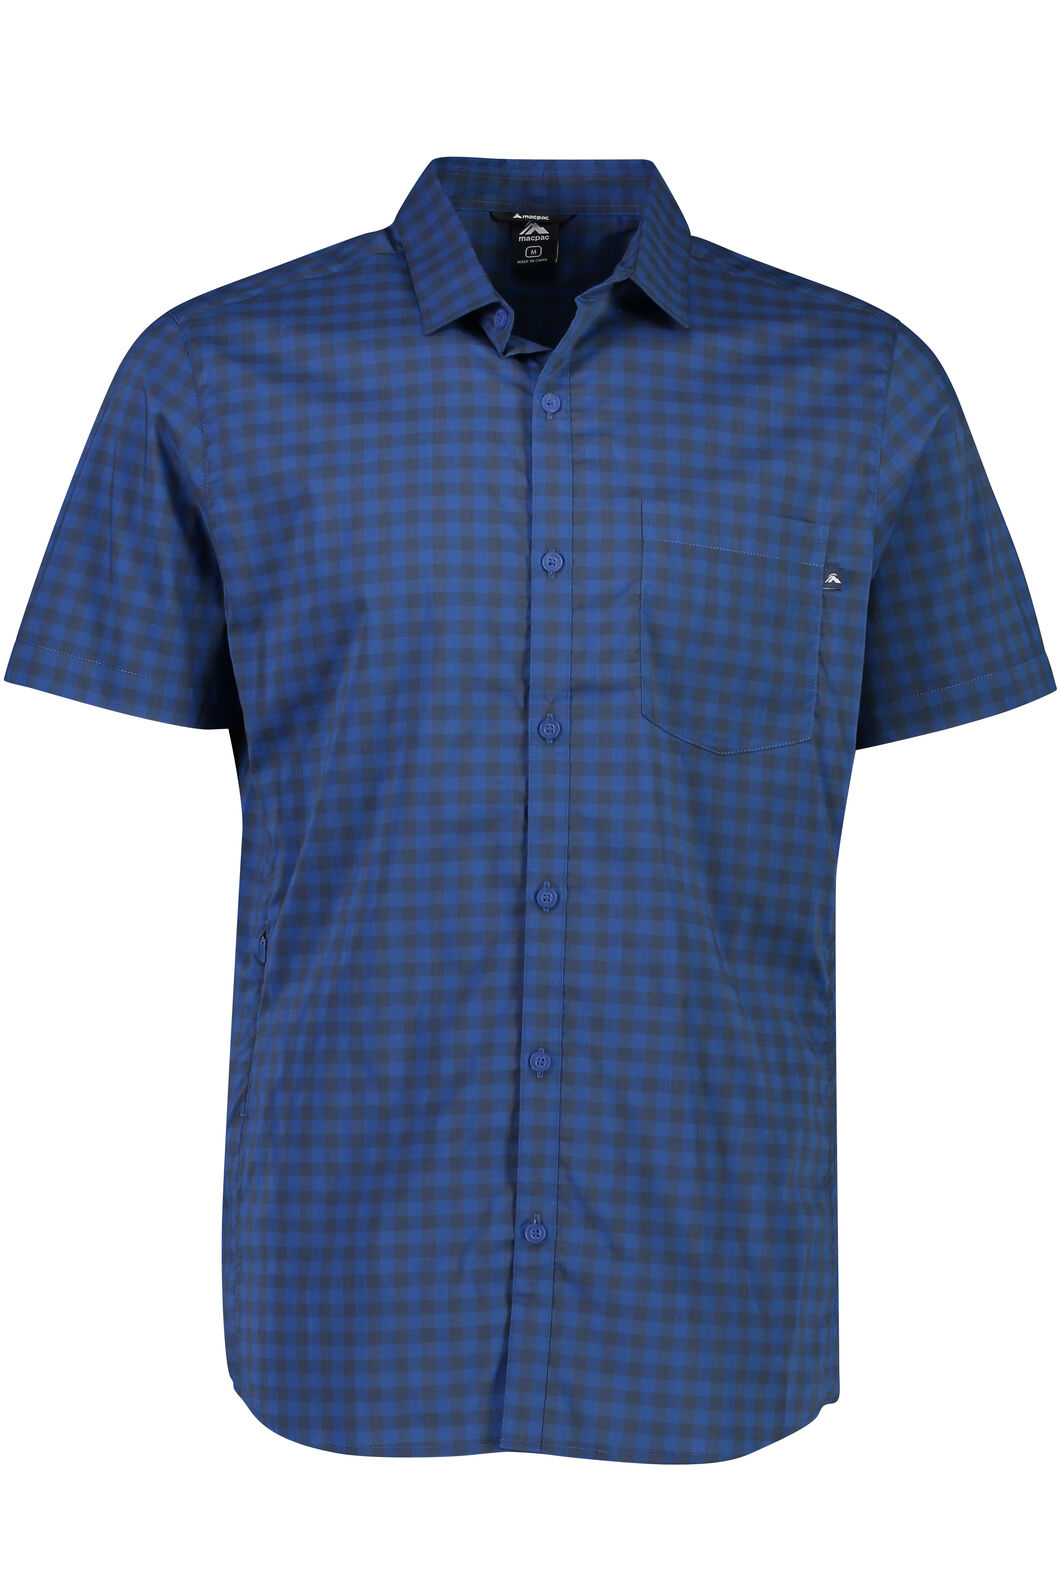 Macpac Crossroad Short Sleeve Shirt - Men's, Black Iris, hi-res